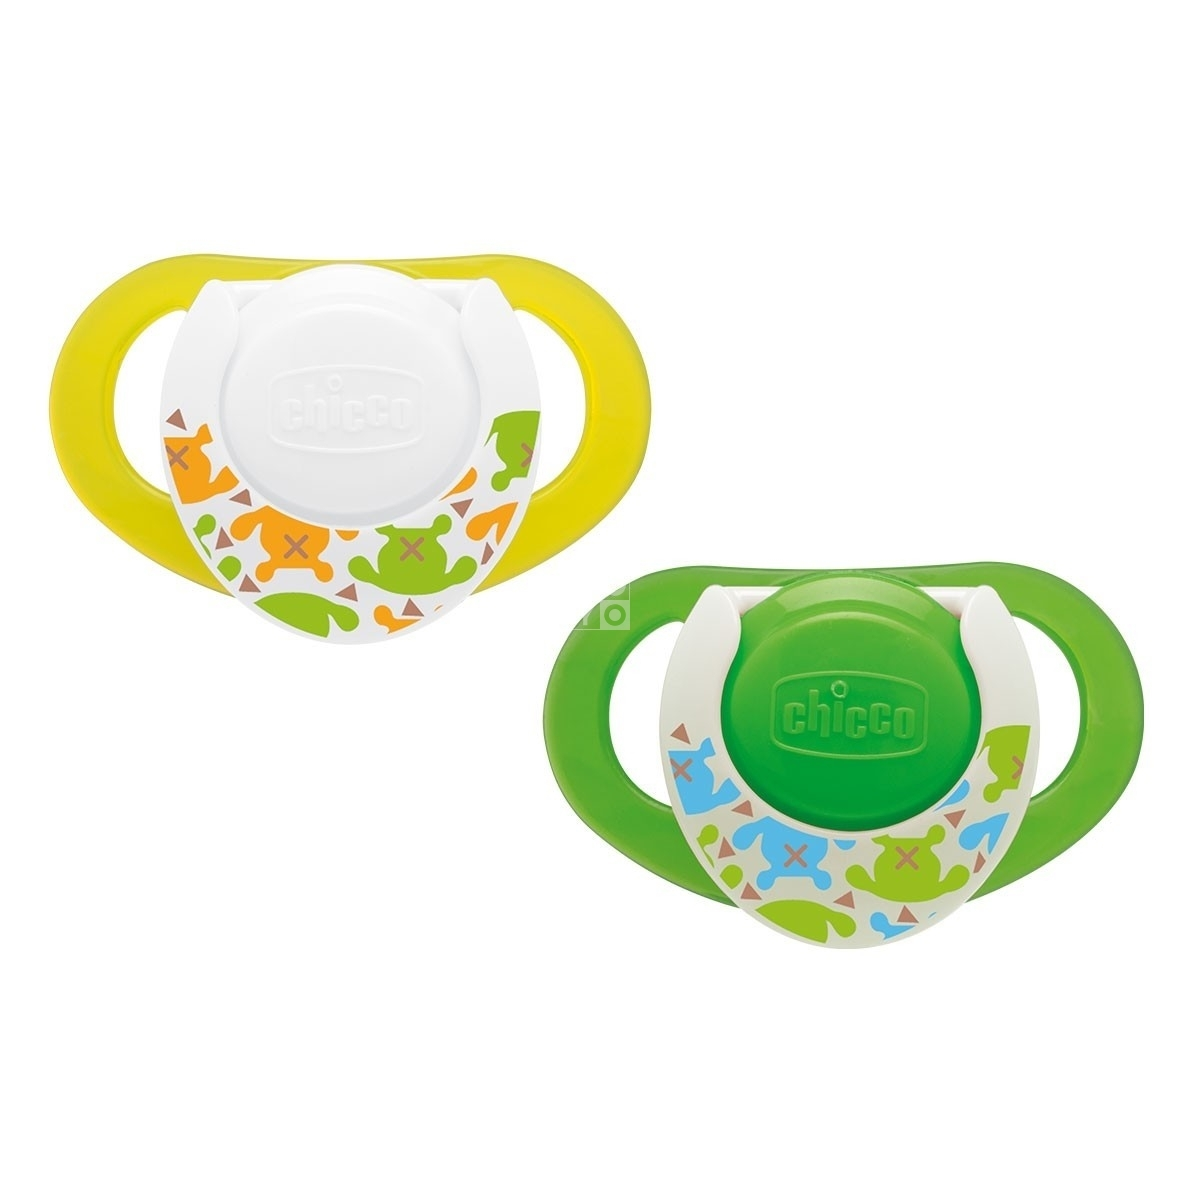 CHICB PHYSIO COMPACT SILICONE SOOTHER LUMI 6-12M / 2PC - GLOWING